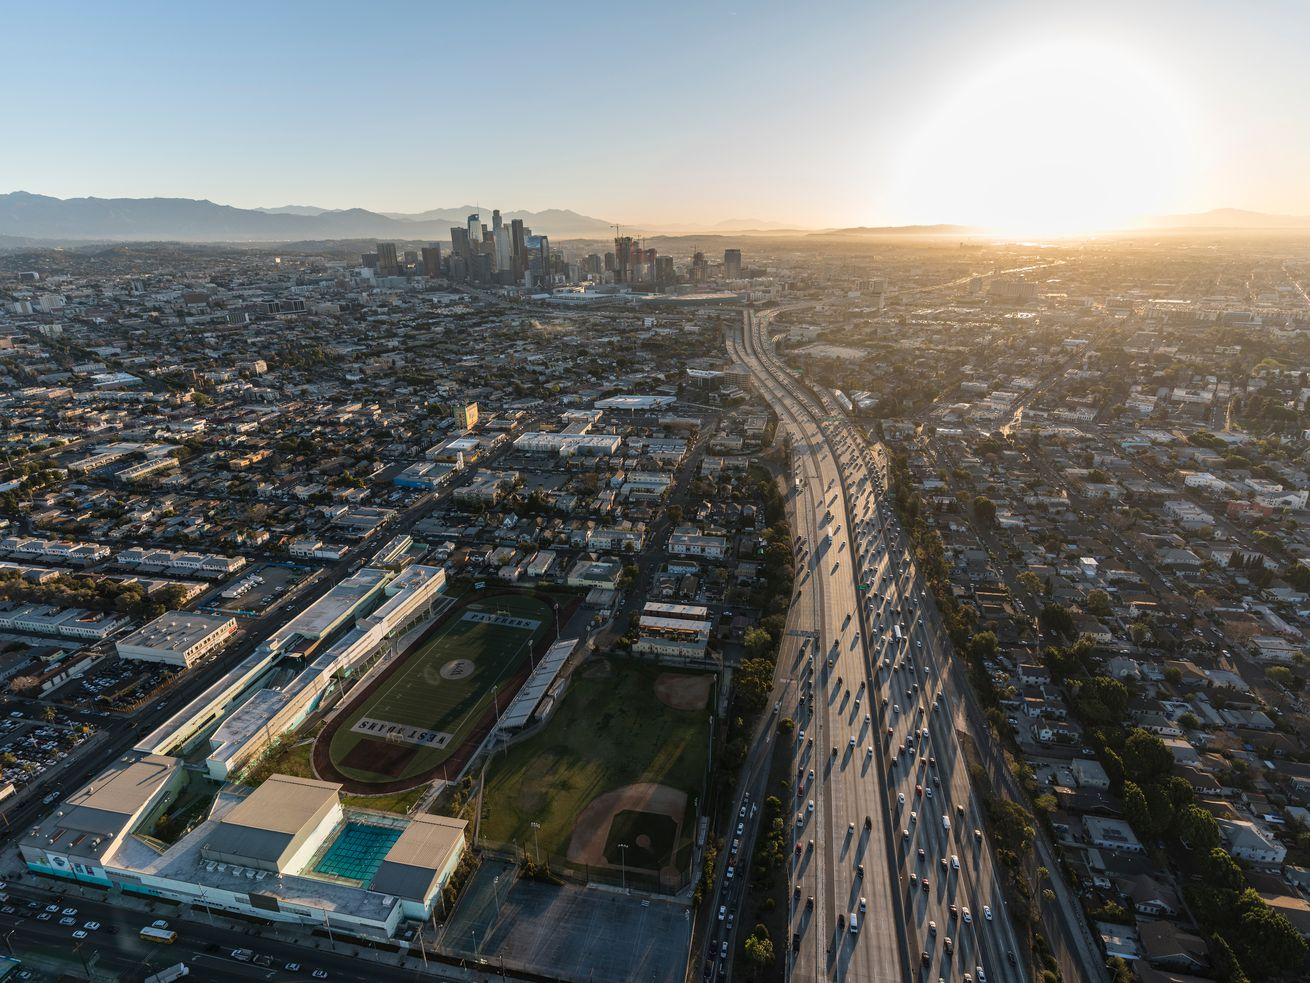 Aerial view of a Los Angeles freeway with the Downtown skyline in the distance